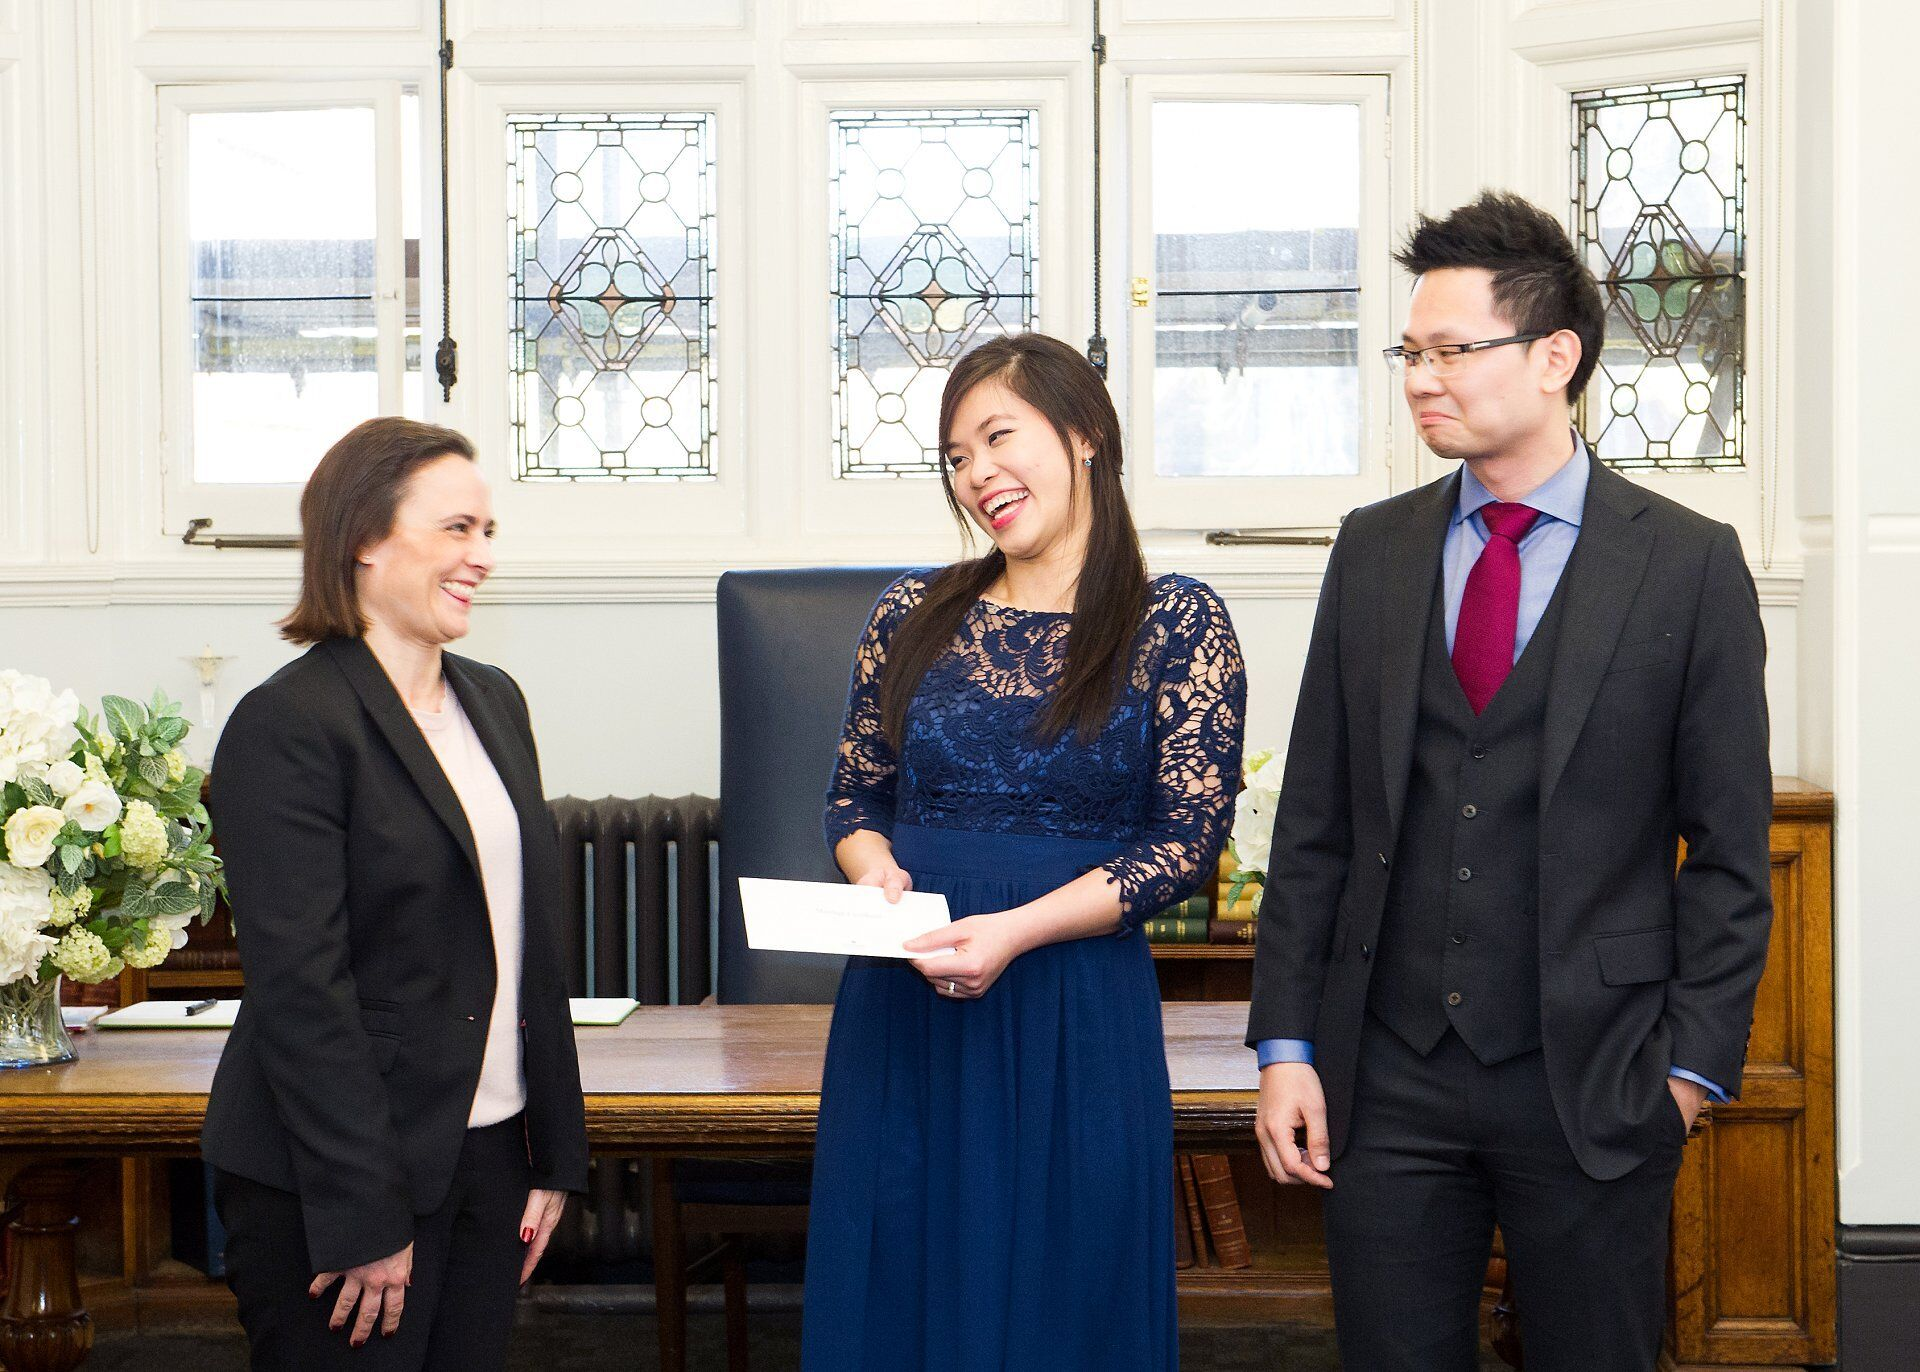 westminster registrar congratulates couple after their mayfair library spring wedding